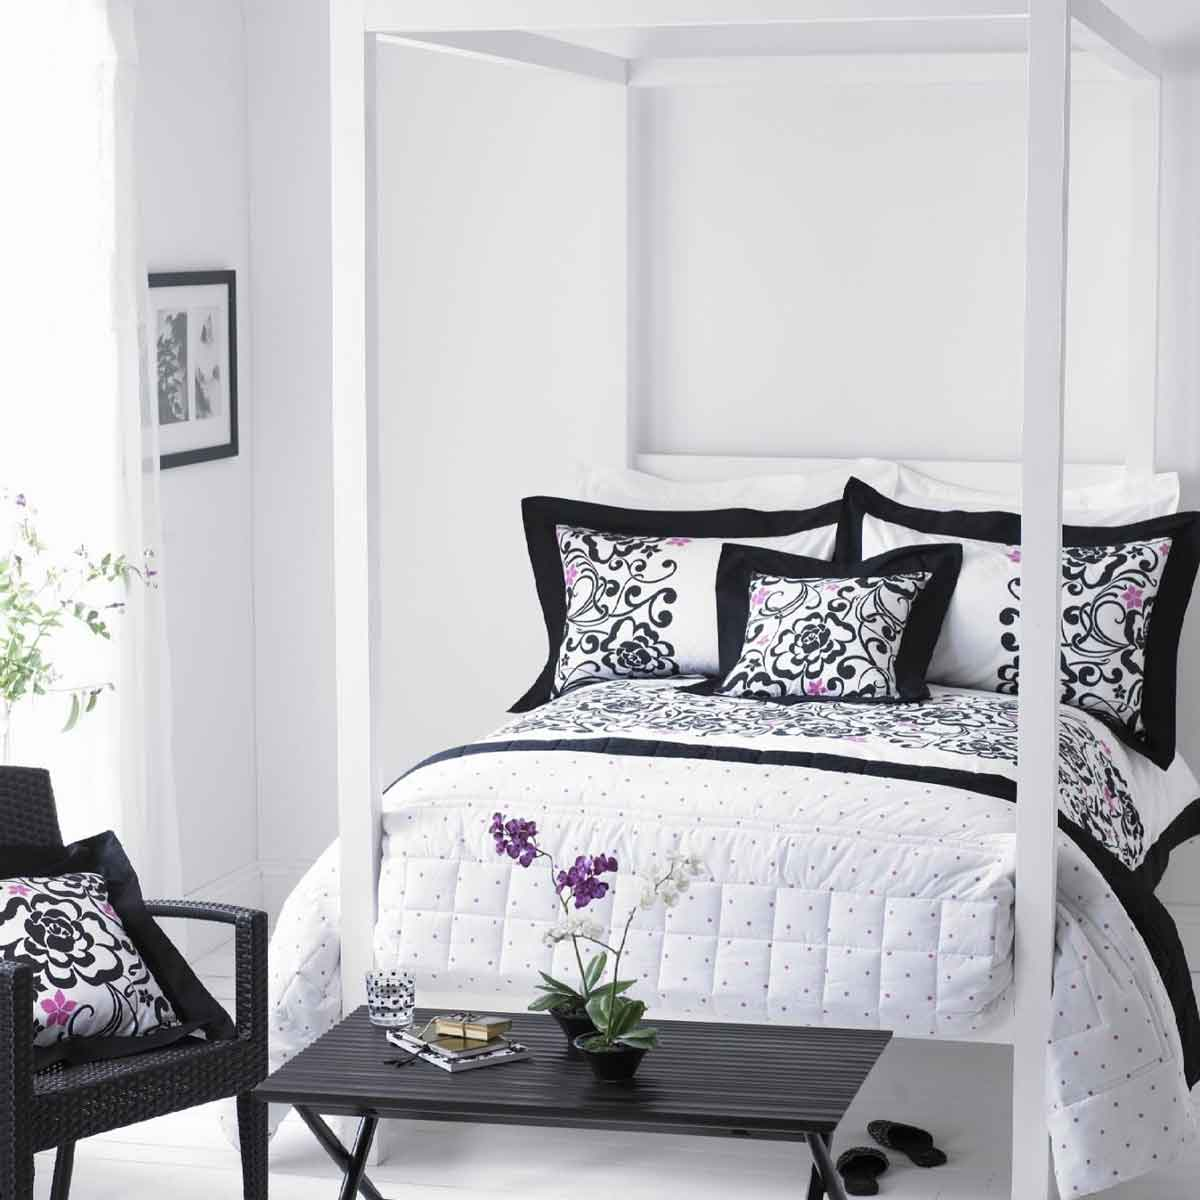 Wonderful bedroom decor ideas in Black and White | Home Design